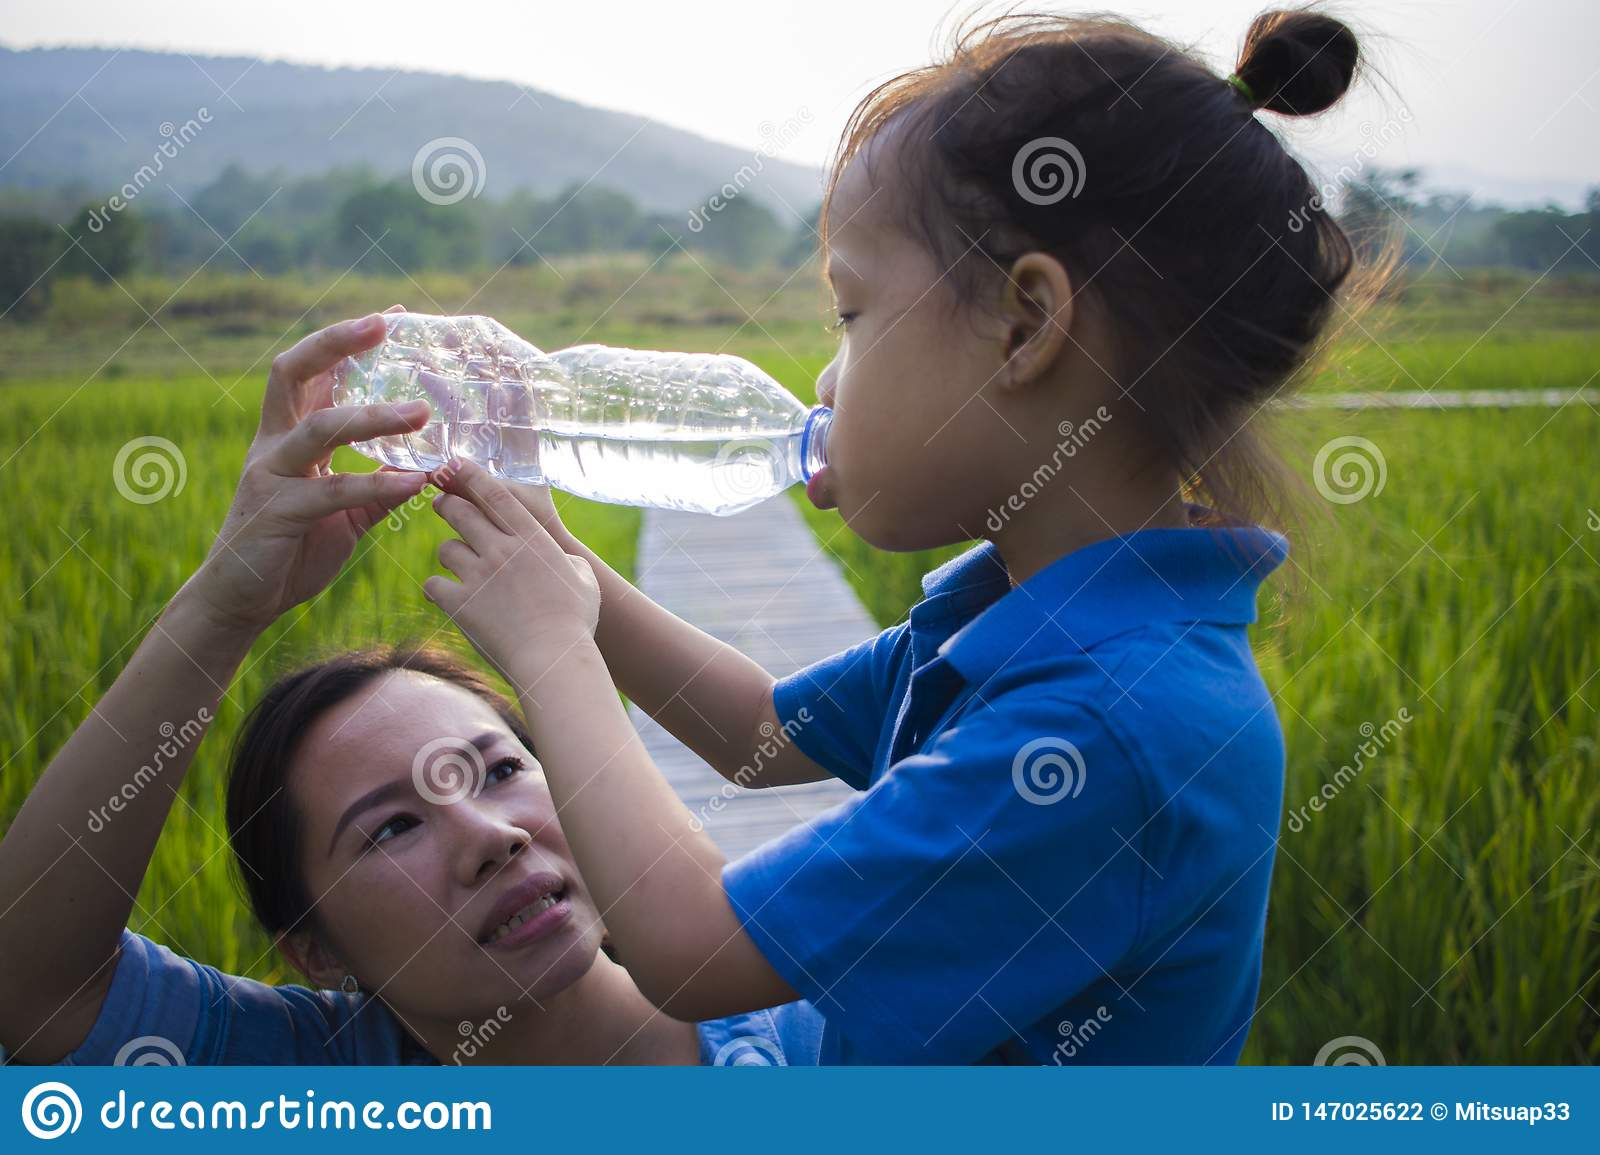 Mother help her children drinking water from bottle in rice field. long hair boy